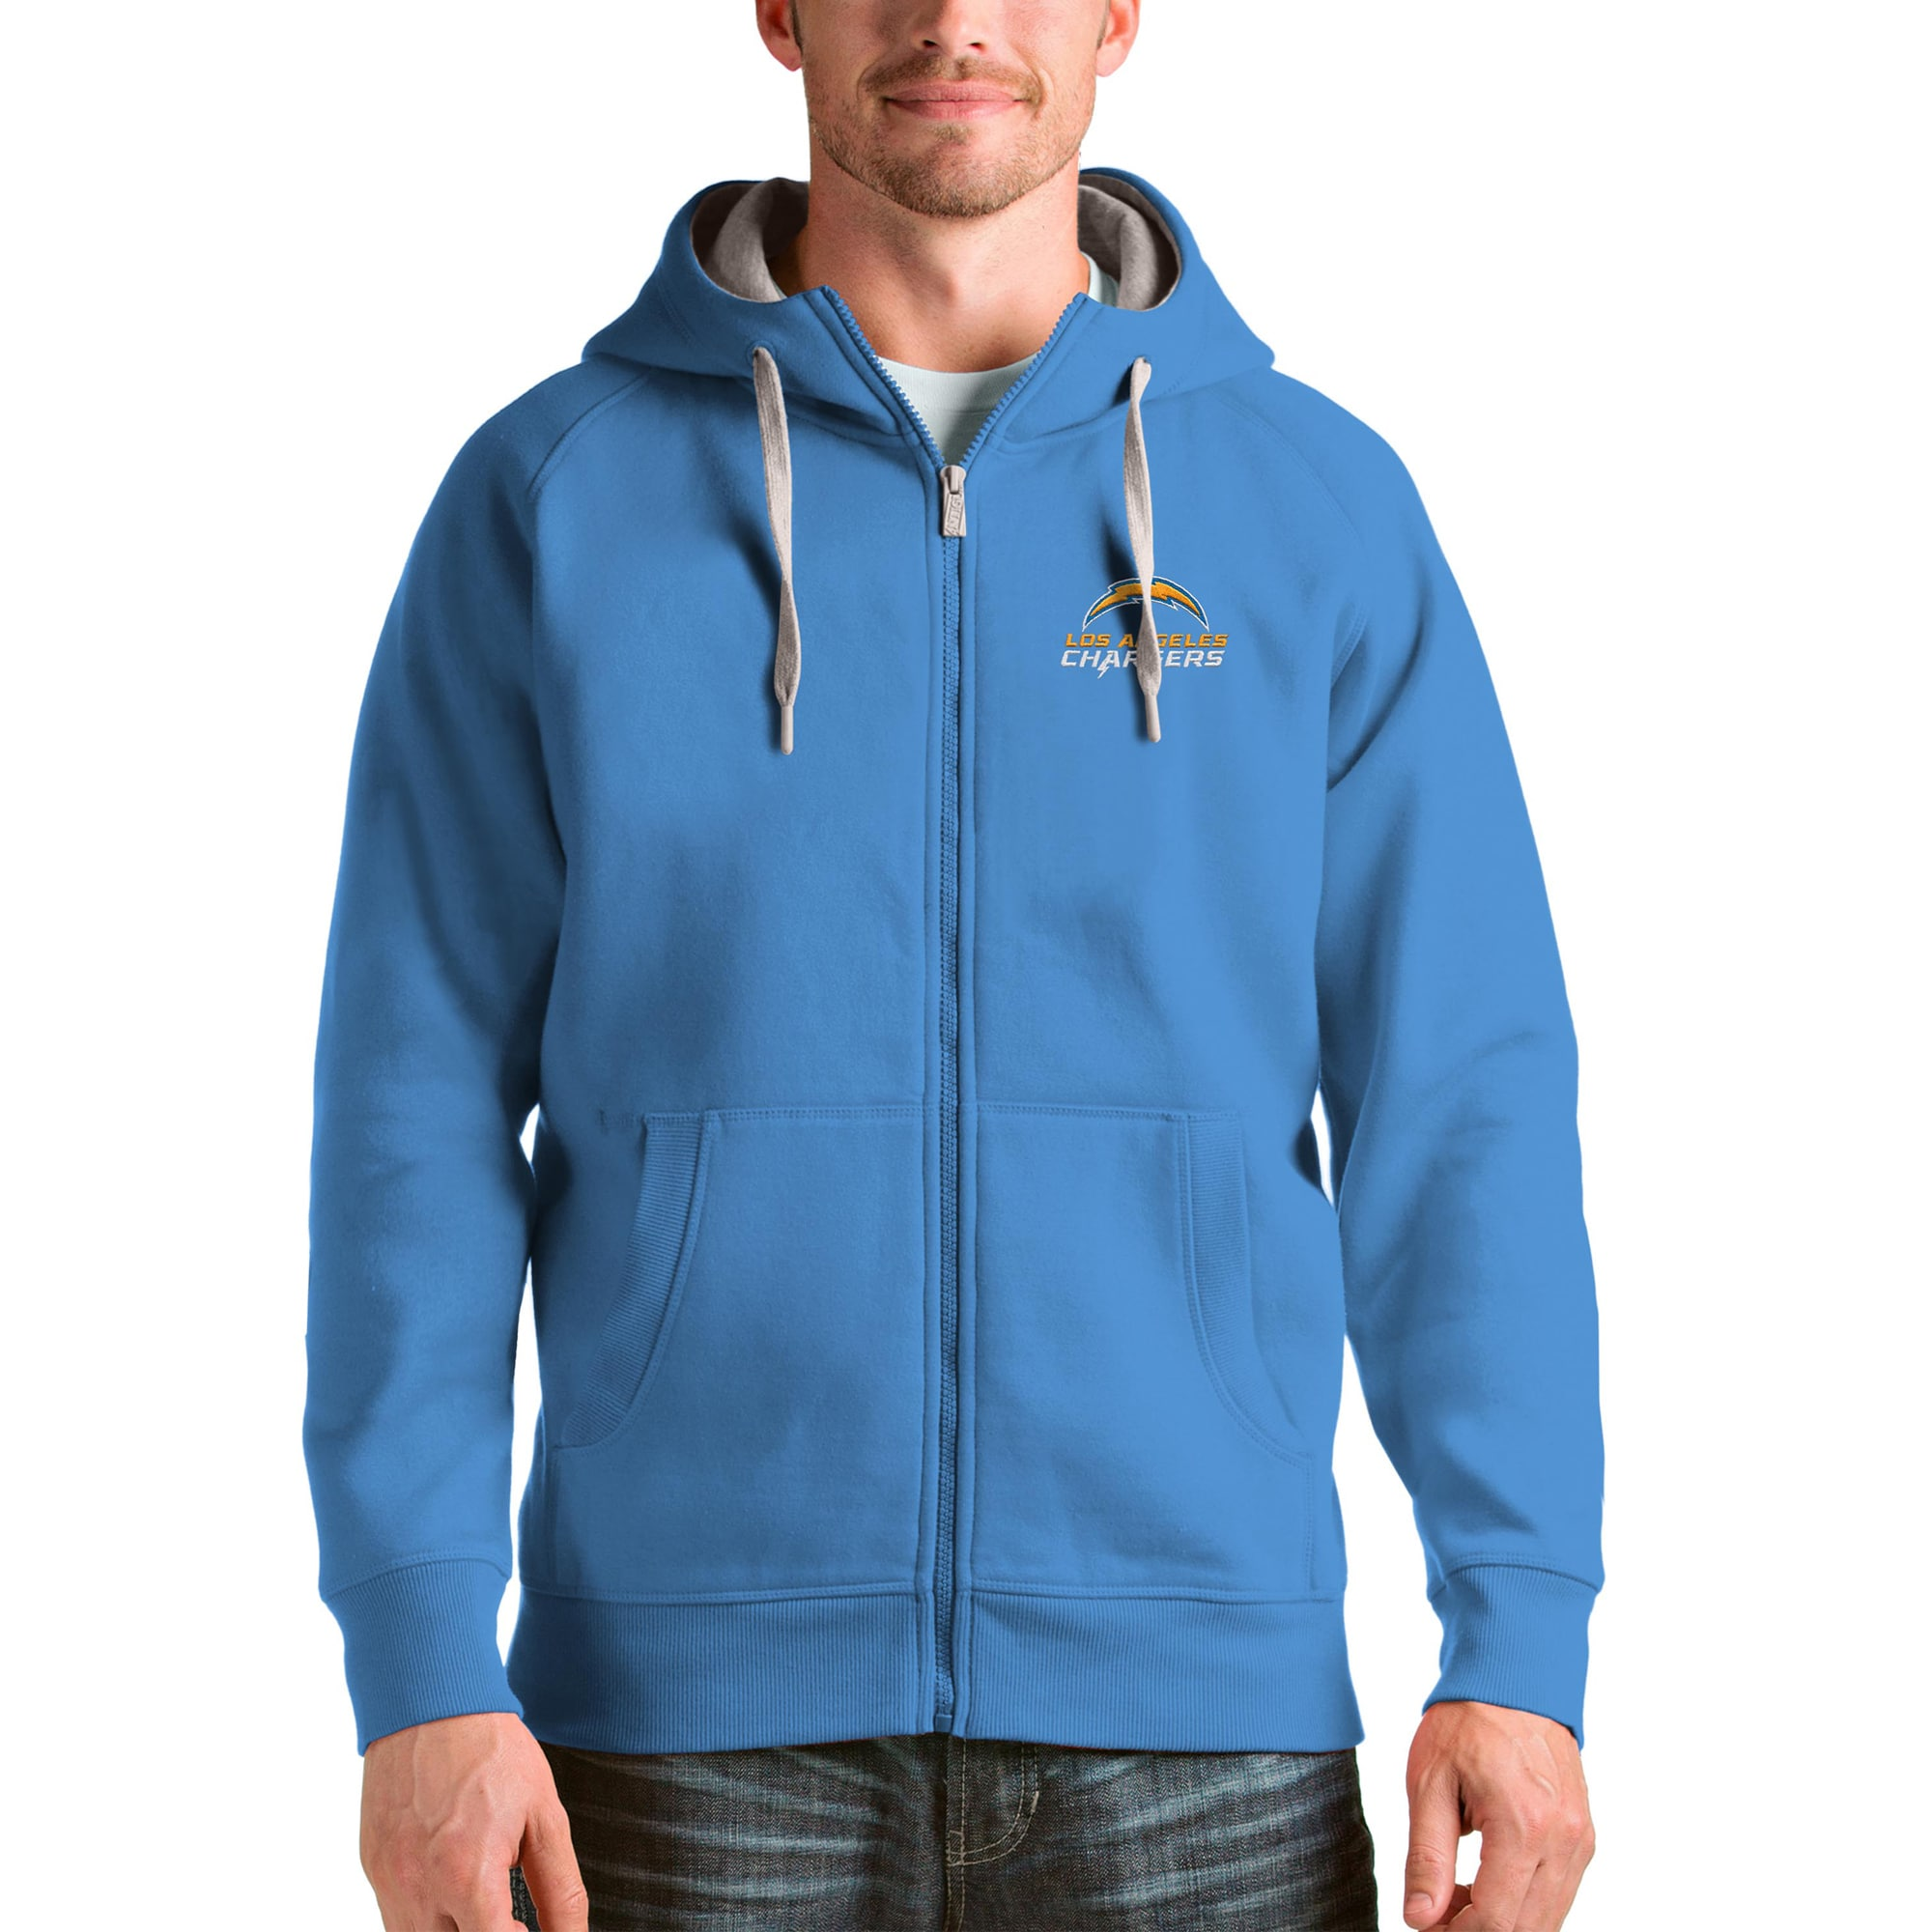 Los Angeles Chargers Antigua Victory Full-Zip Hoodie - Powder Blue